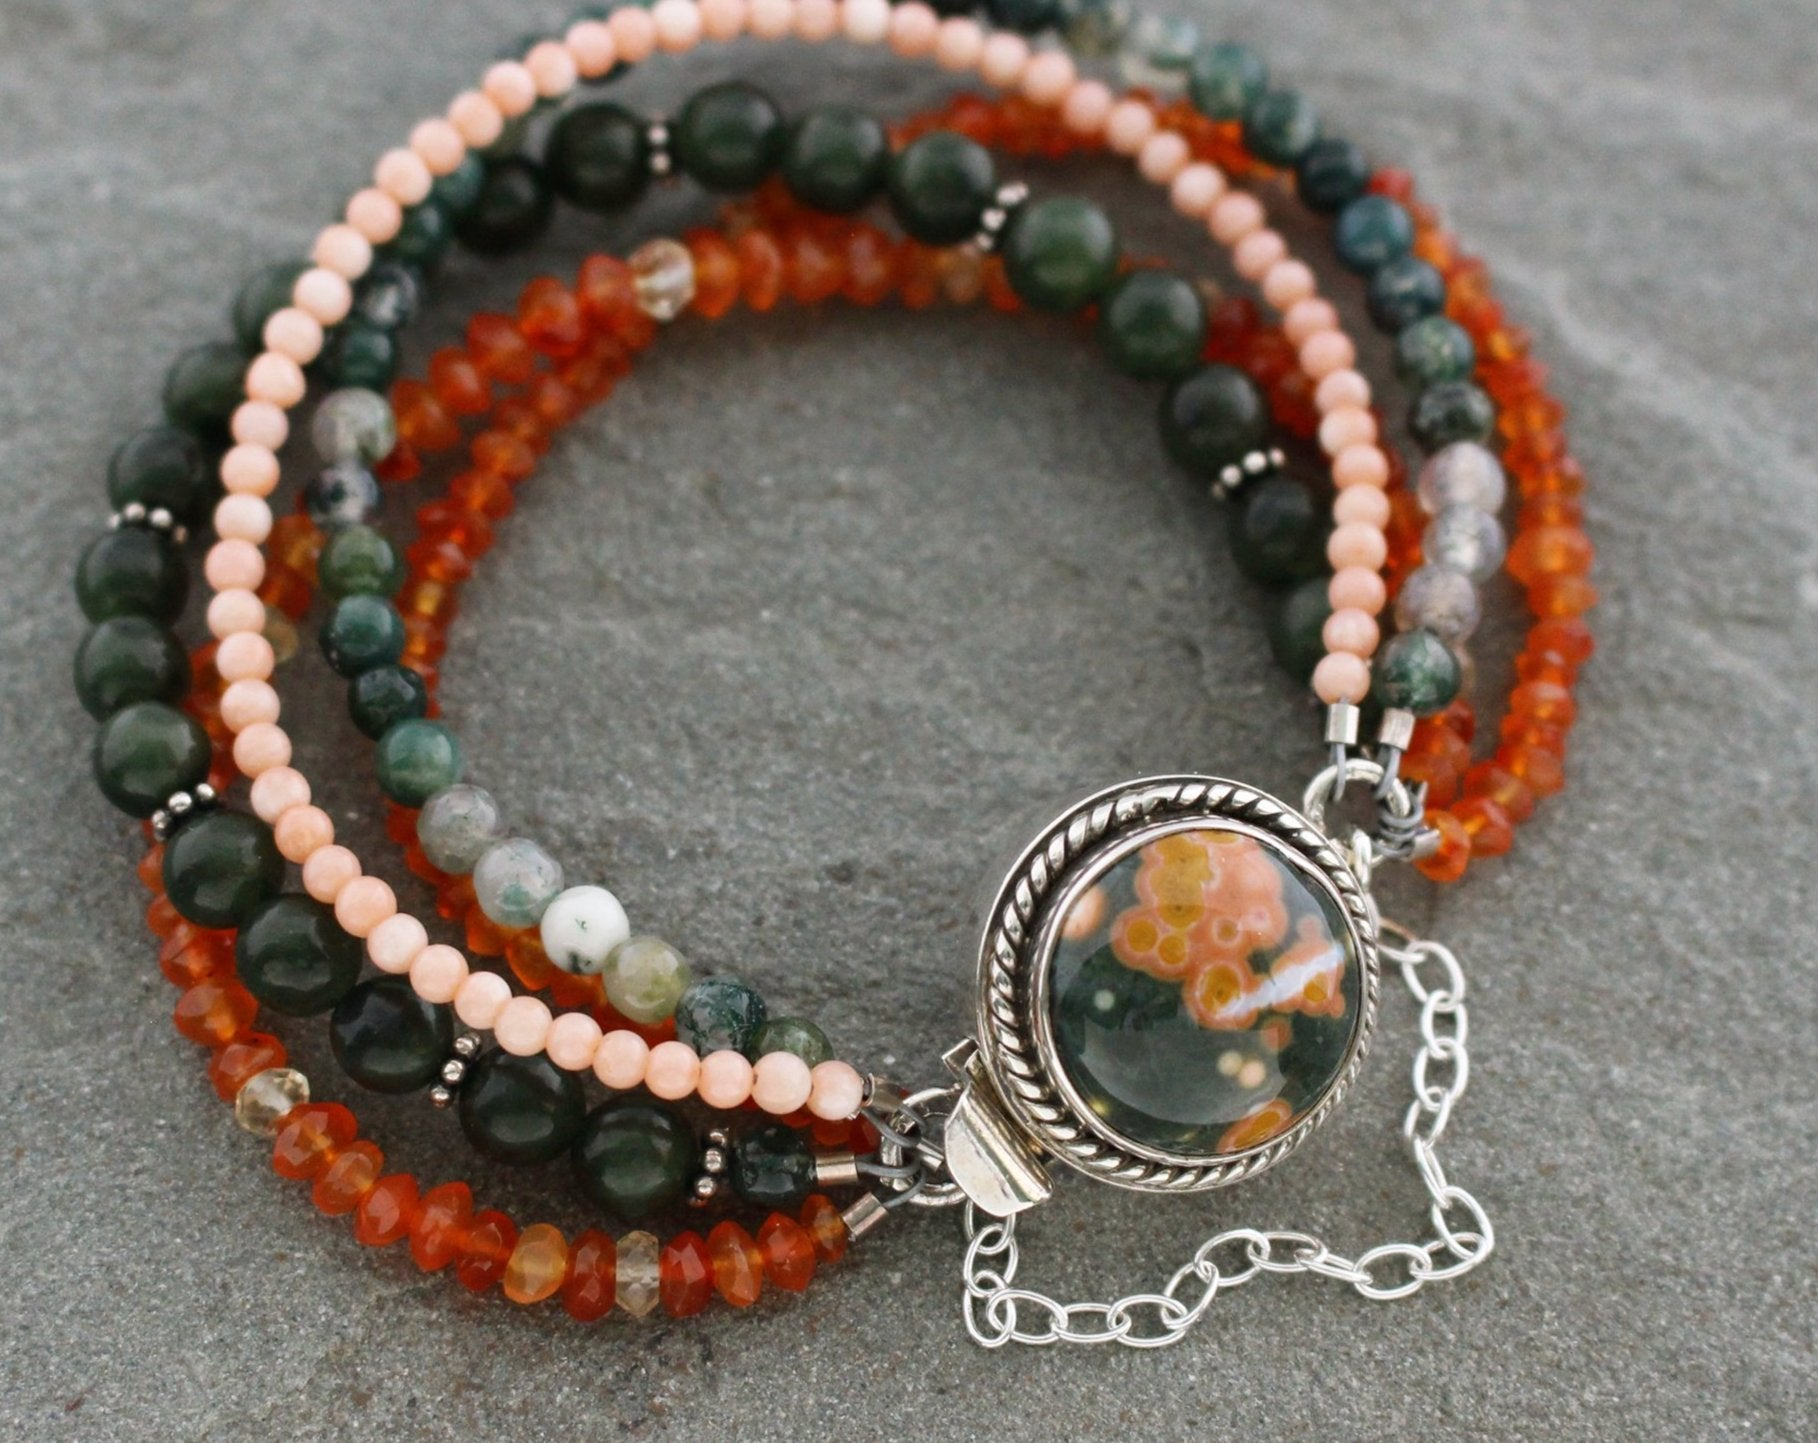 Ocean Jasper Multistrand Bracelet with Jade, Carnelian, Moss Agate and Coral